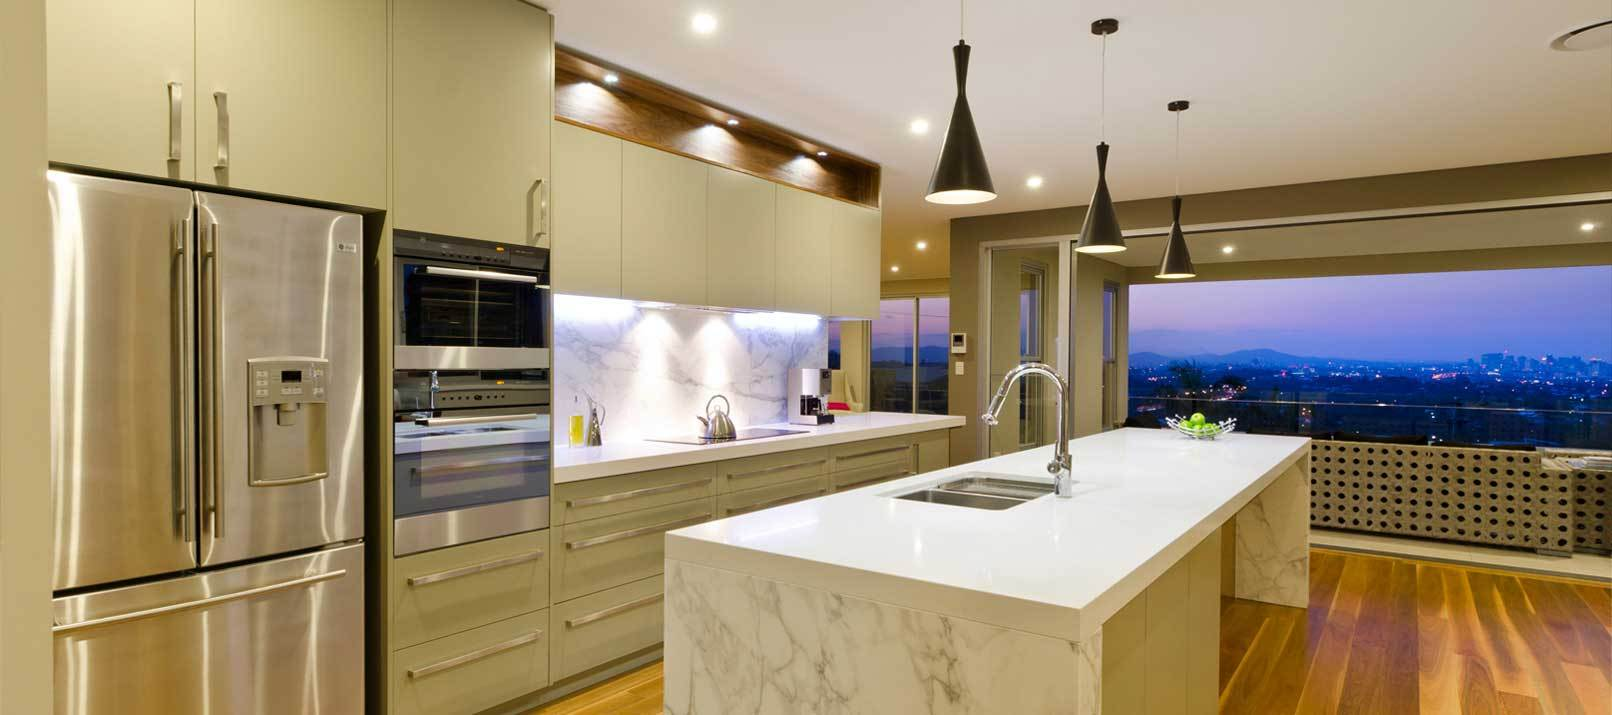 How to effectively plan your new kitchen designer kitchens for Planning a new kitchen